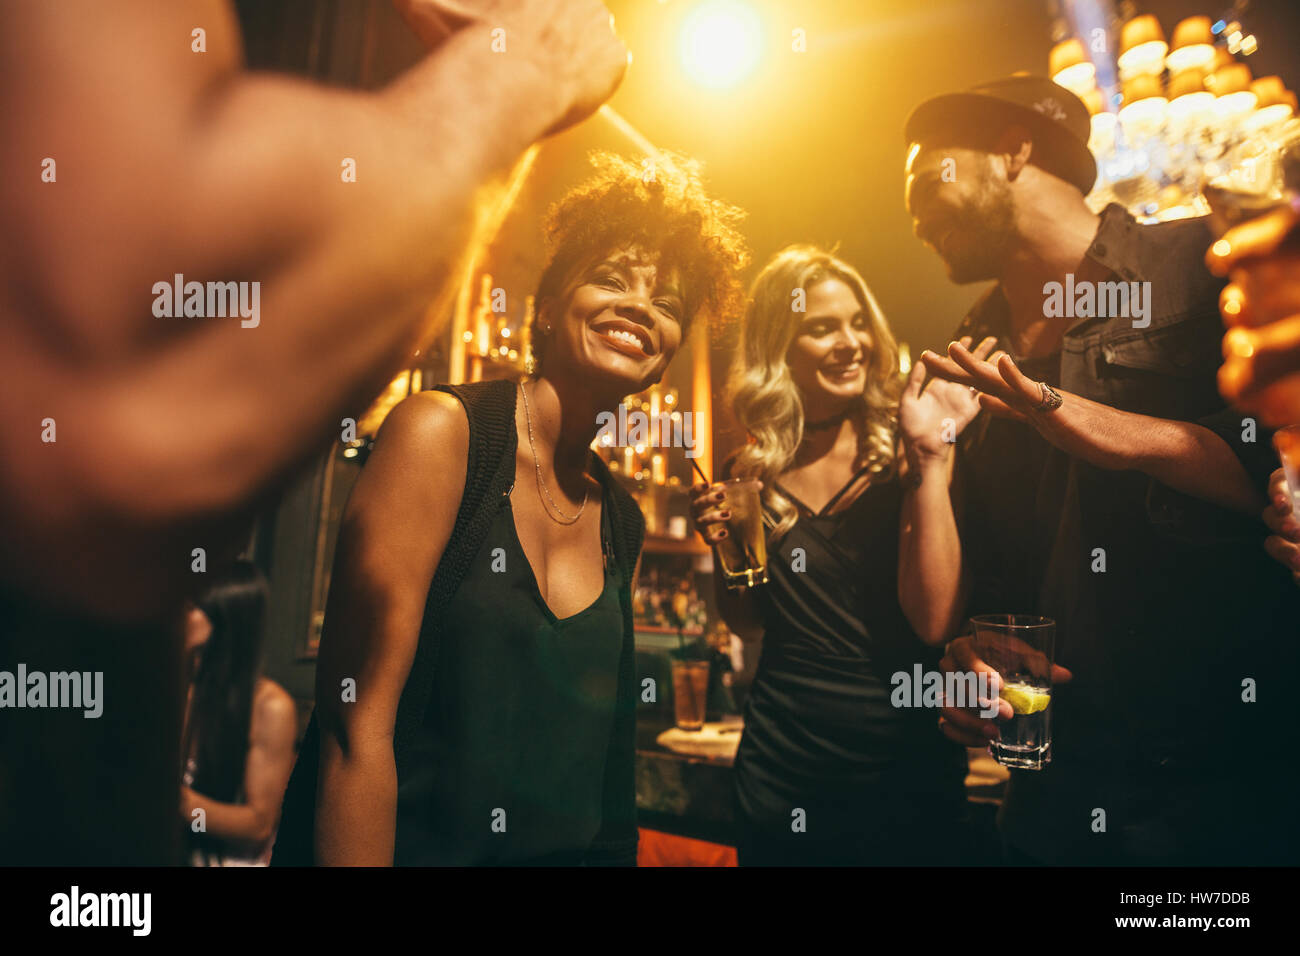 Image of happy young people having fun at disco. Group of friends enjoying a party at nightclub. - Stock Image